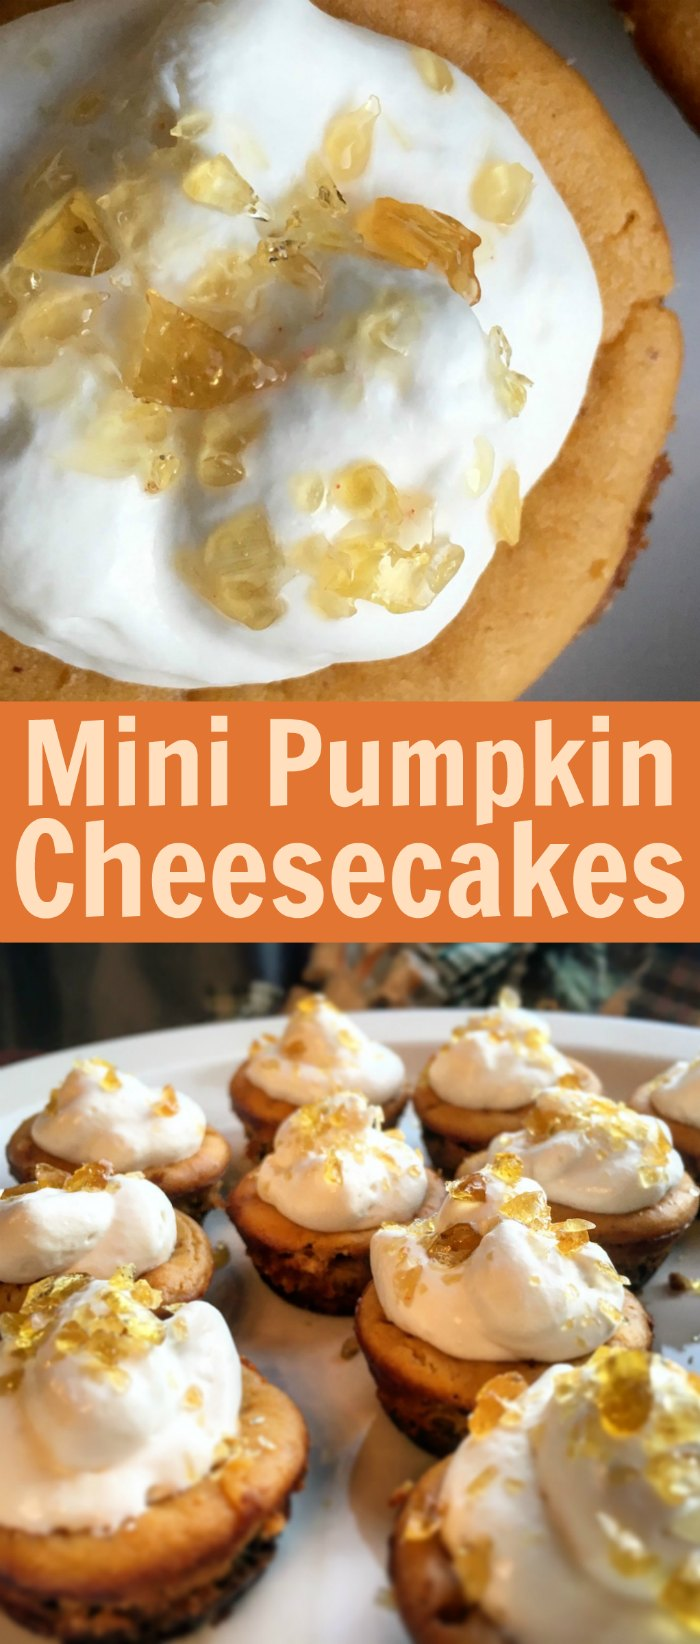 Mini Pumpkin Cheesecakes with Salted-Caramel Crunch Topping | Mommy Evolution #pumpkincheesecake #minicheesecakes